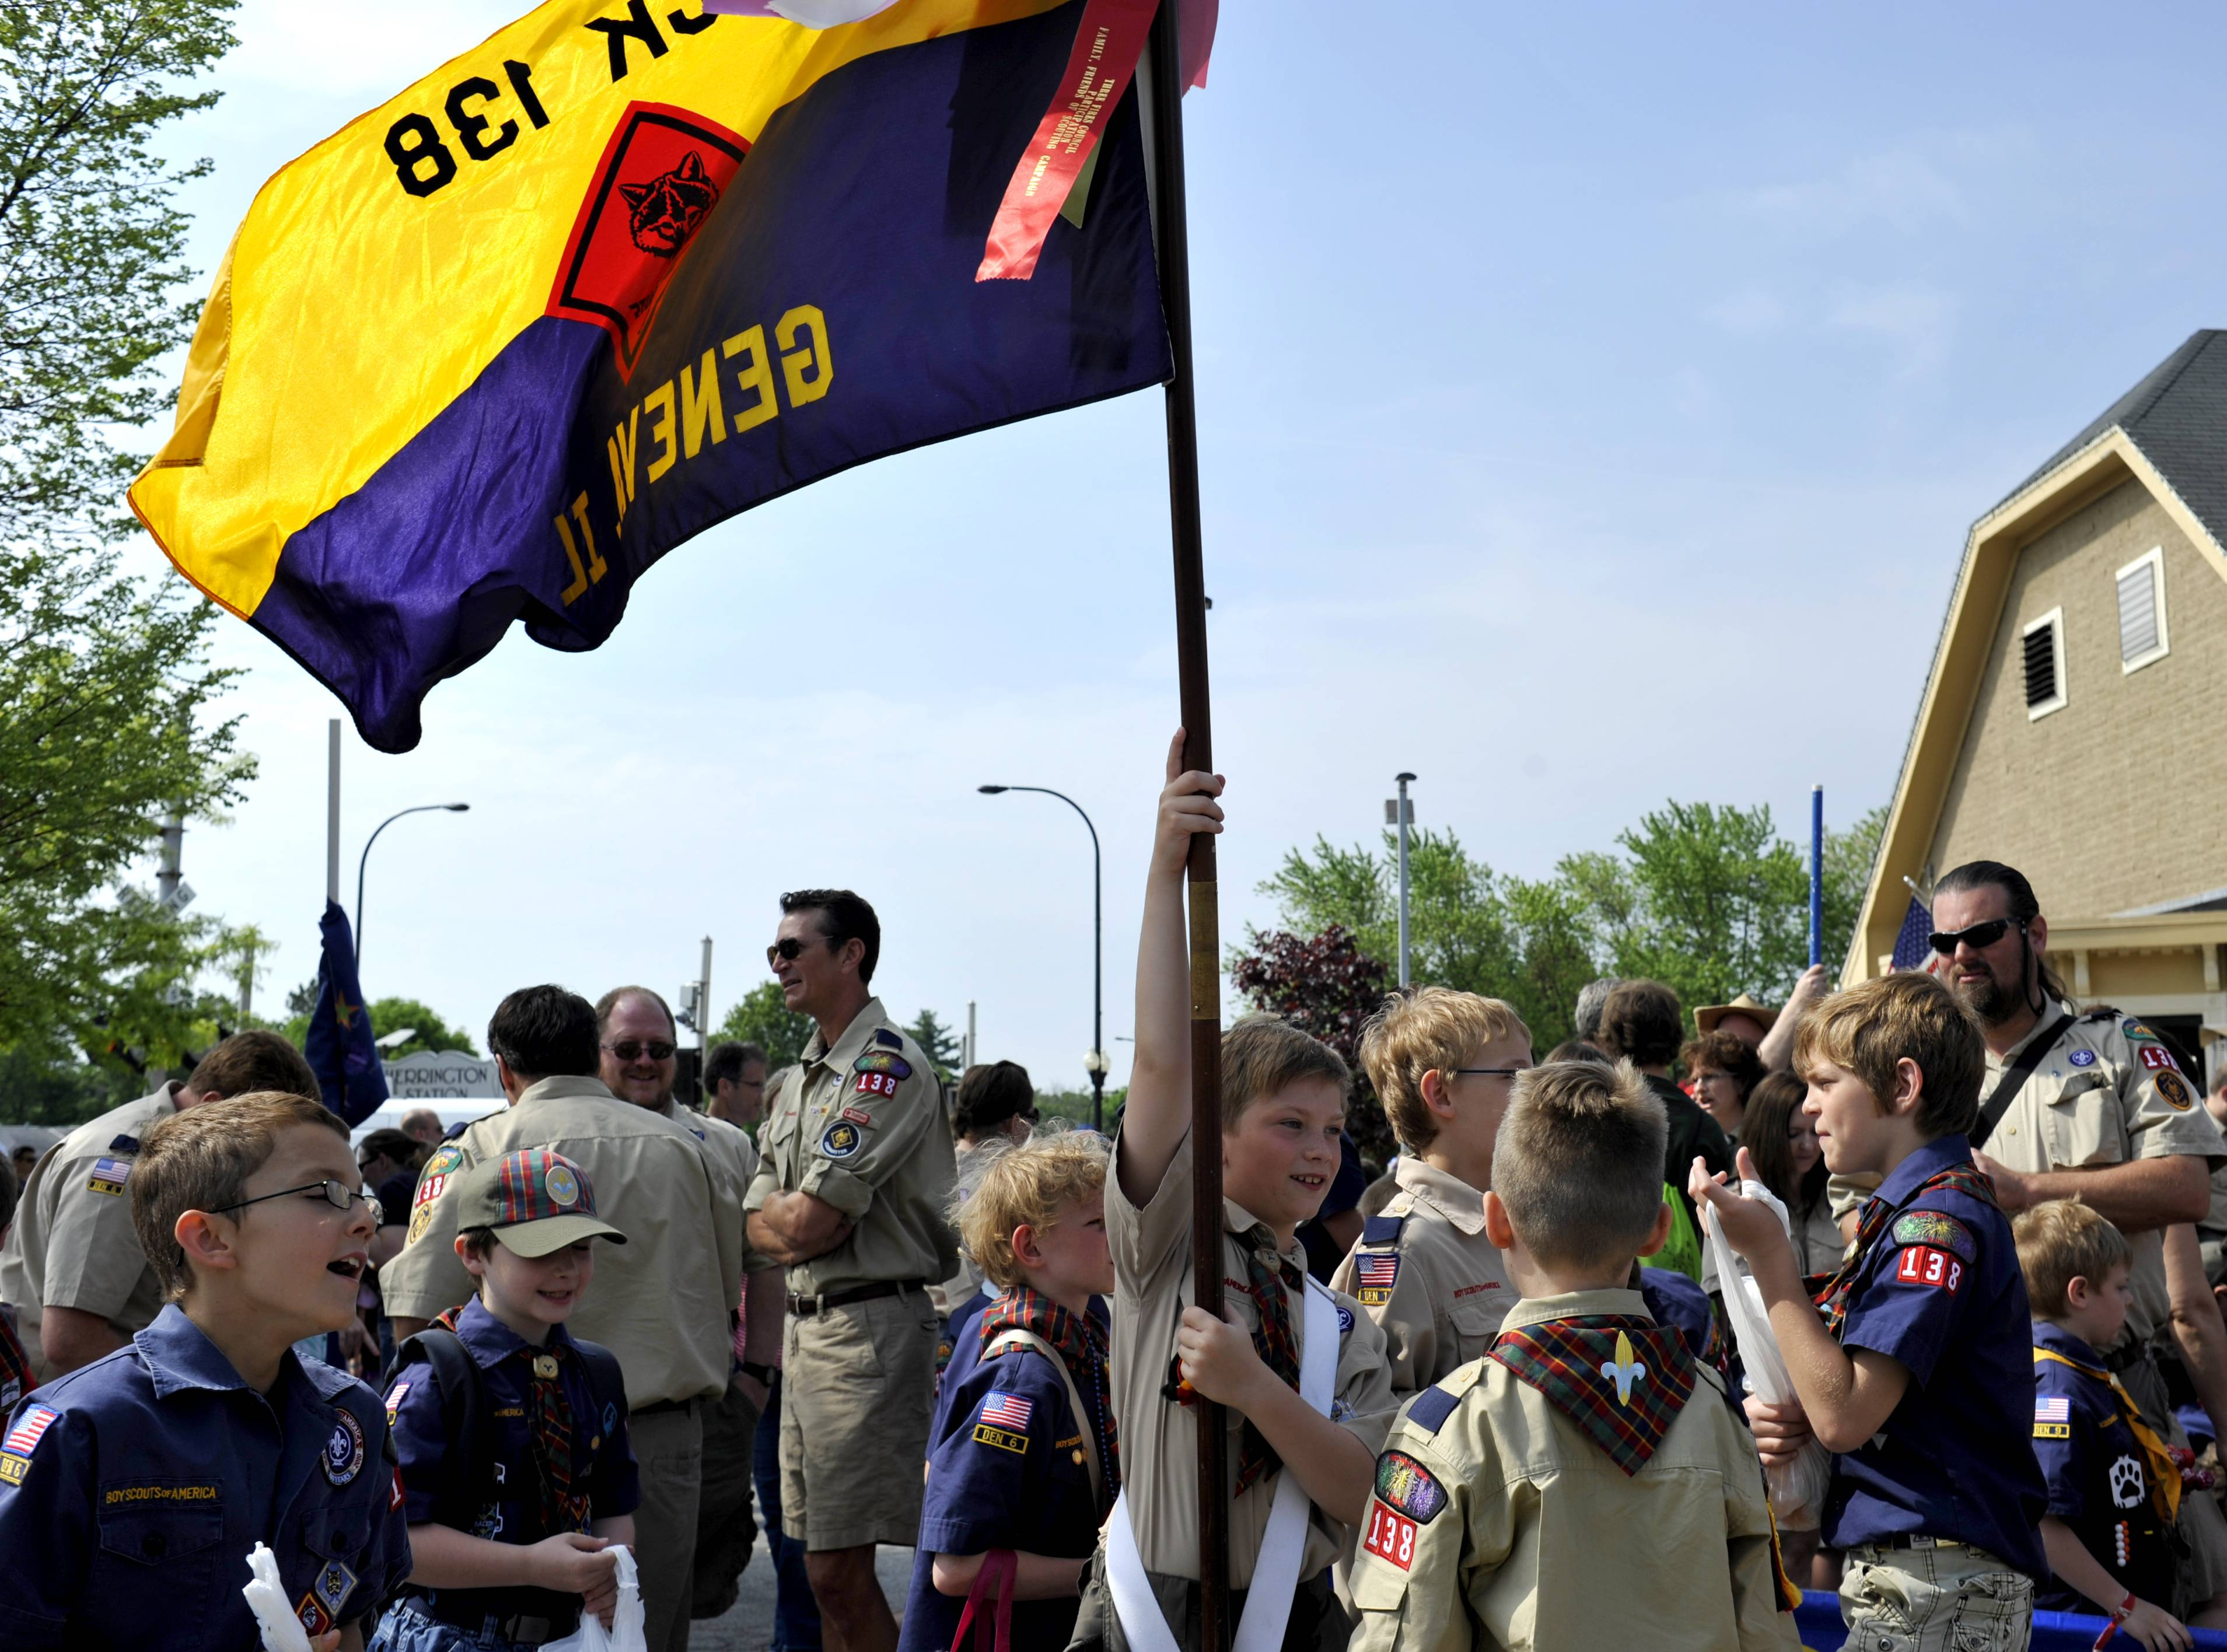 Dylan Funkhouser, 9, of Geneva (center) holds the flag for Cubscout Pack 138 before the start of the Geneva Memorial Day Parade on Monday.